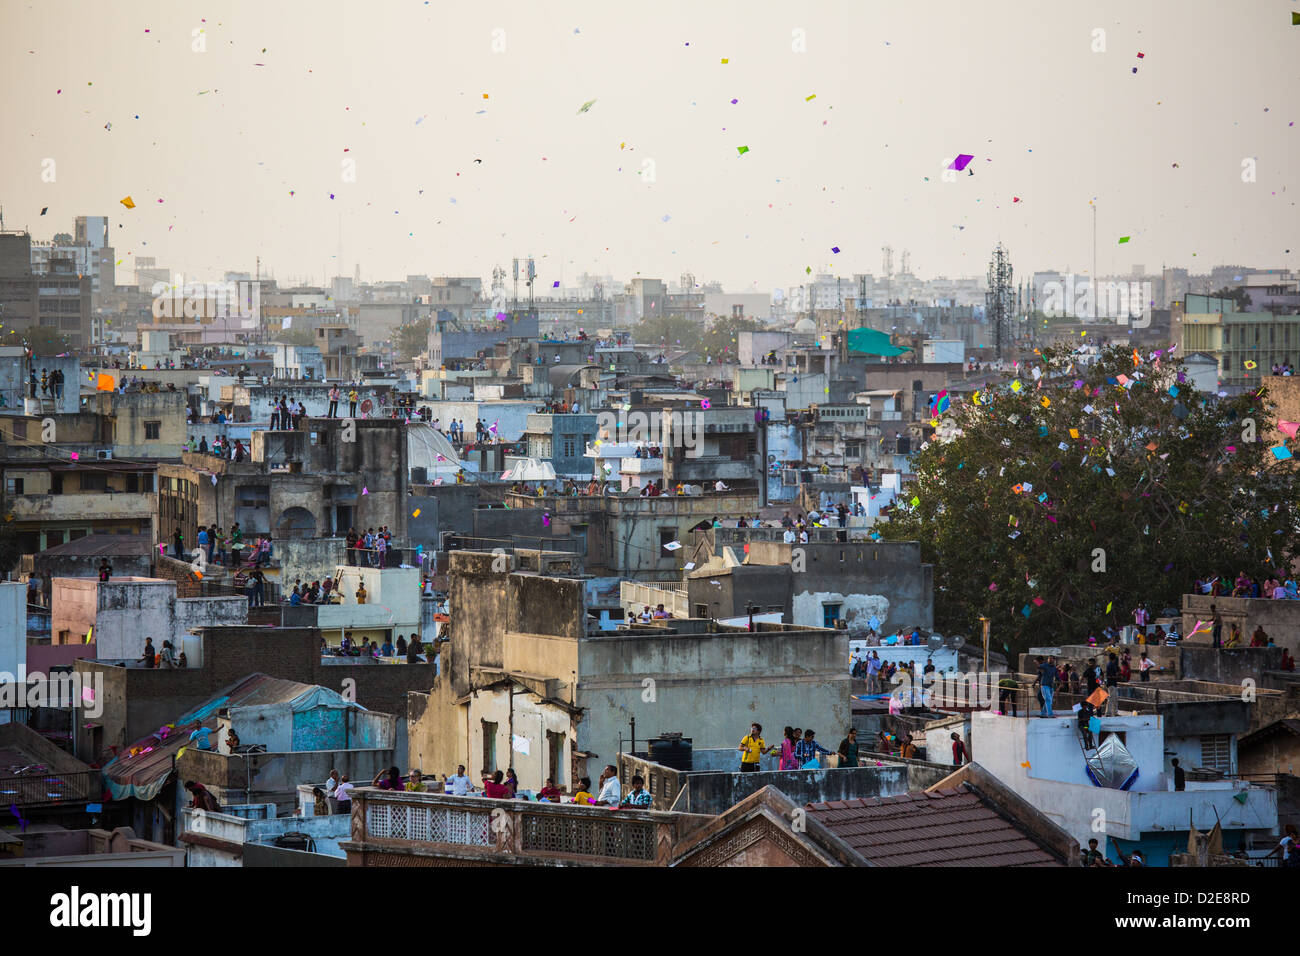 Kite Festival or Uttarayan in Ahmedabad, Gujarat, India - Stock Image